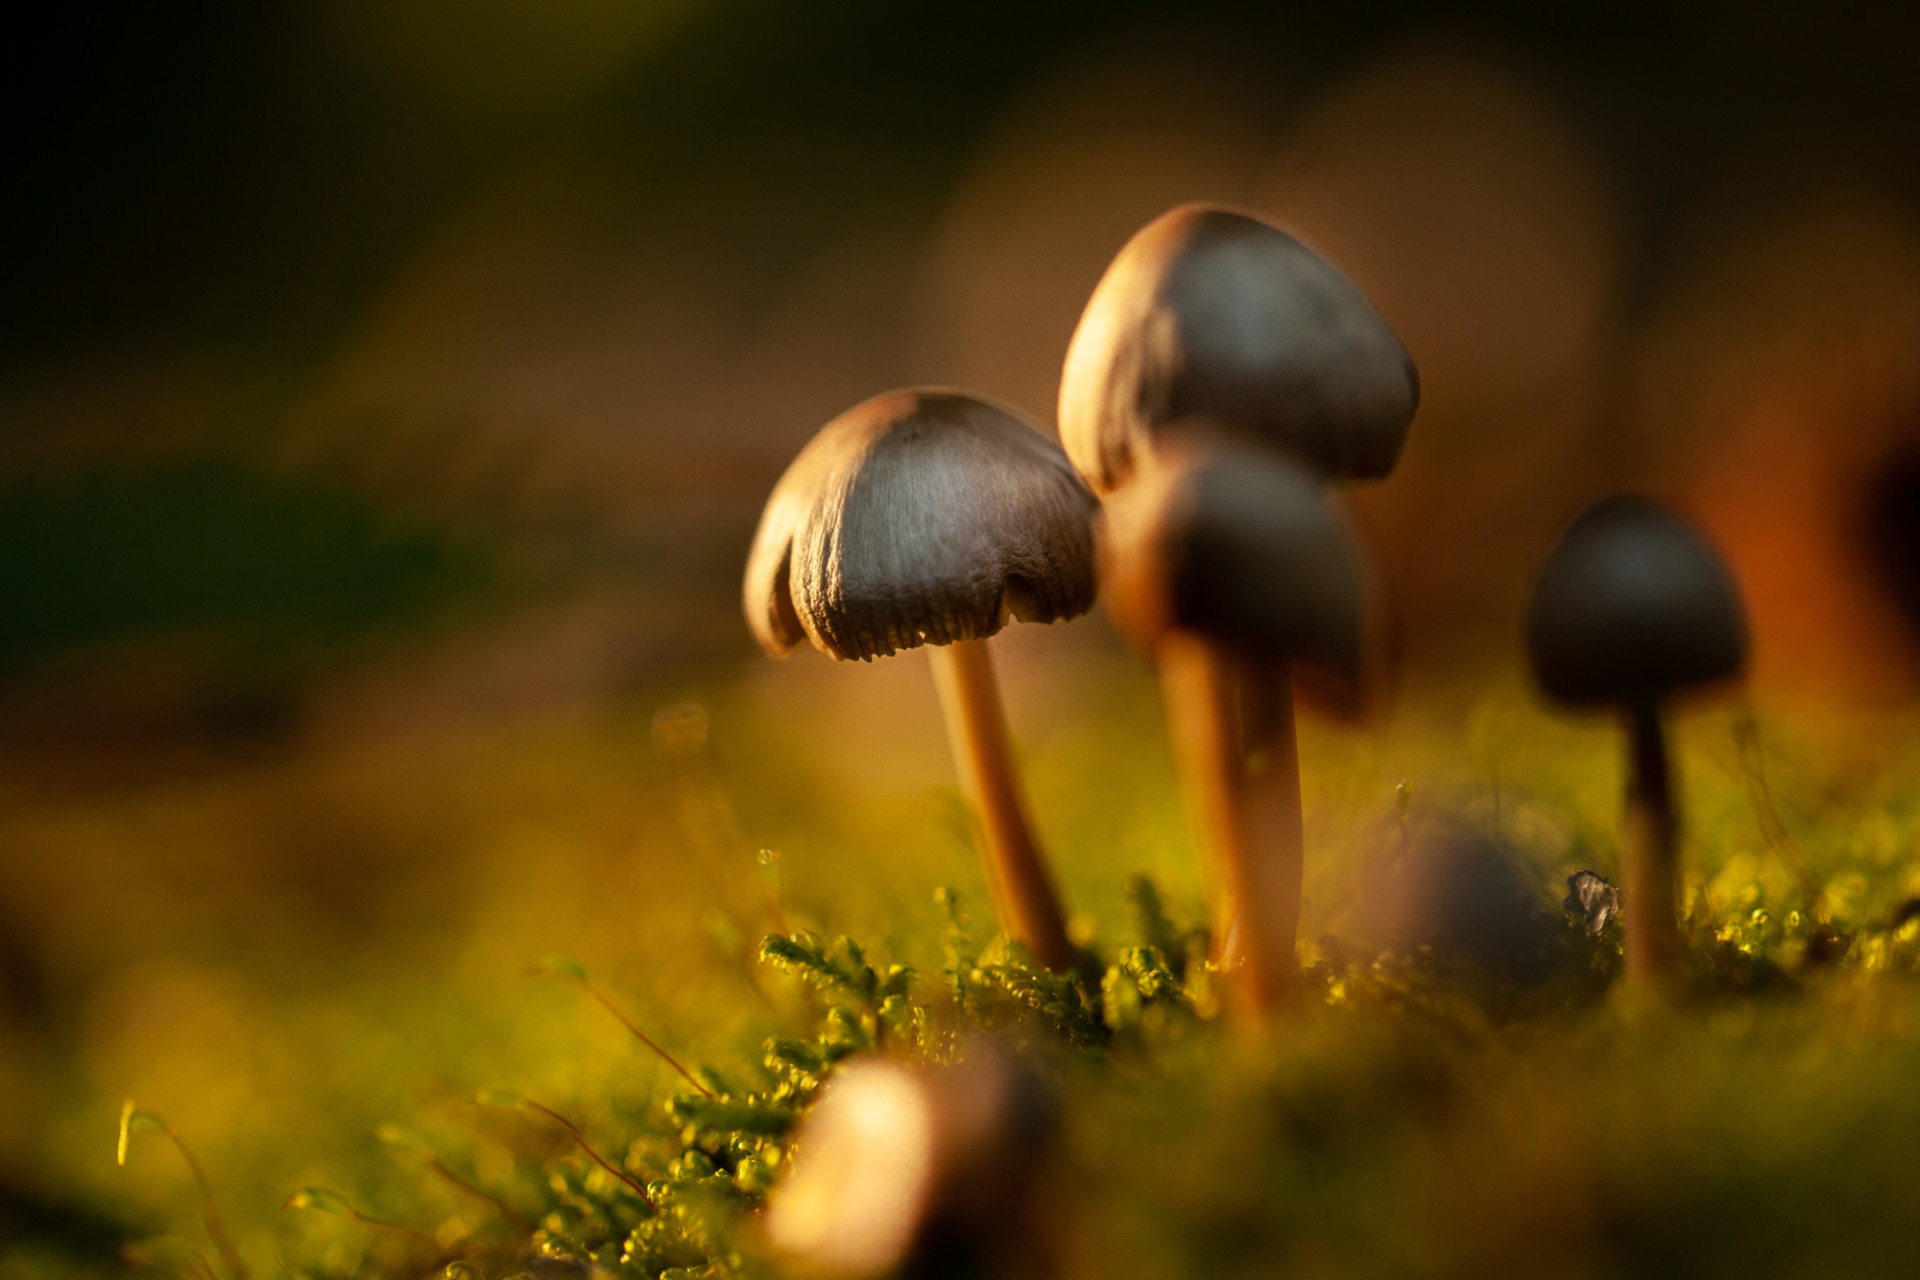 Mushrooms in the German Forest